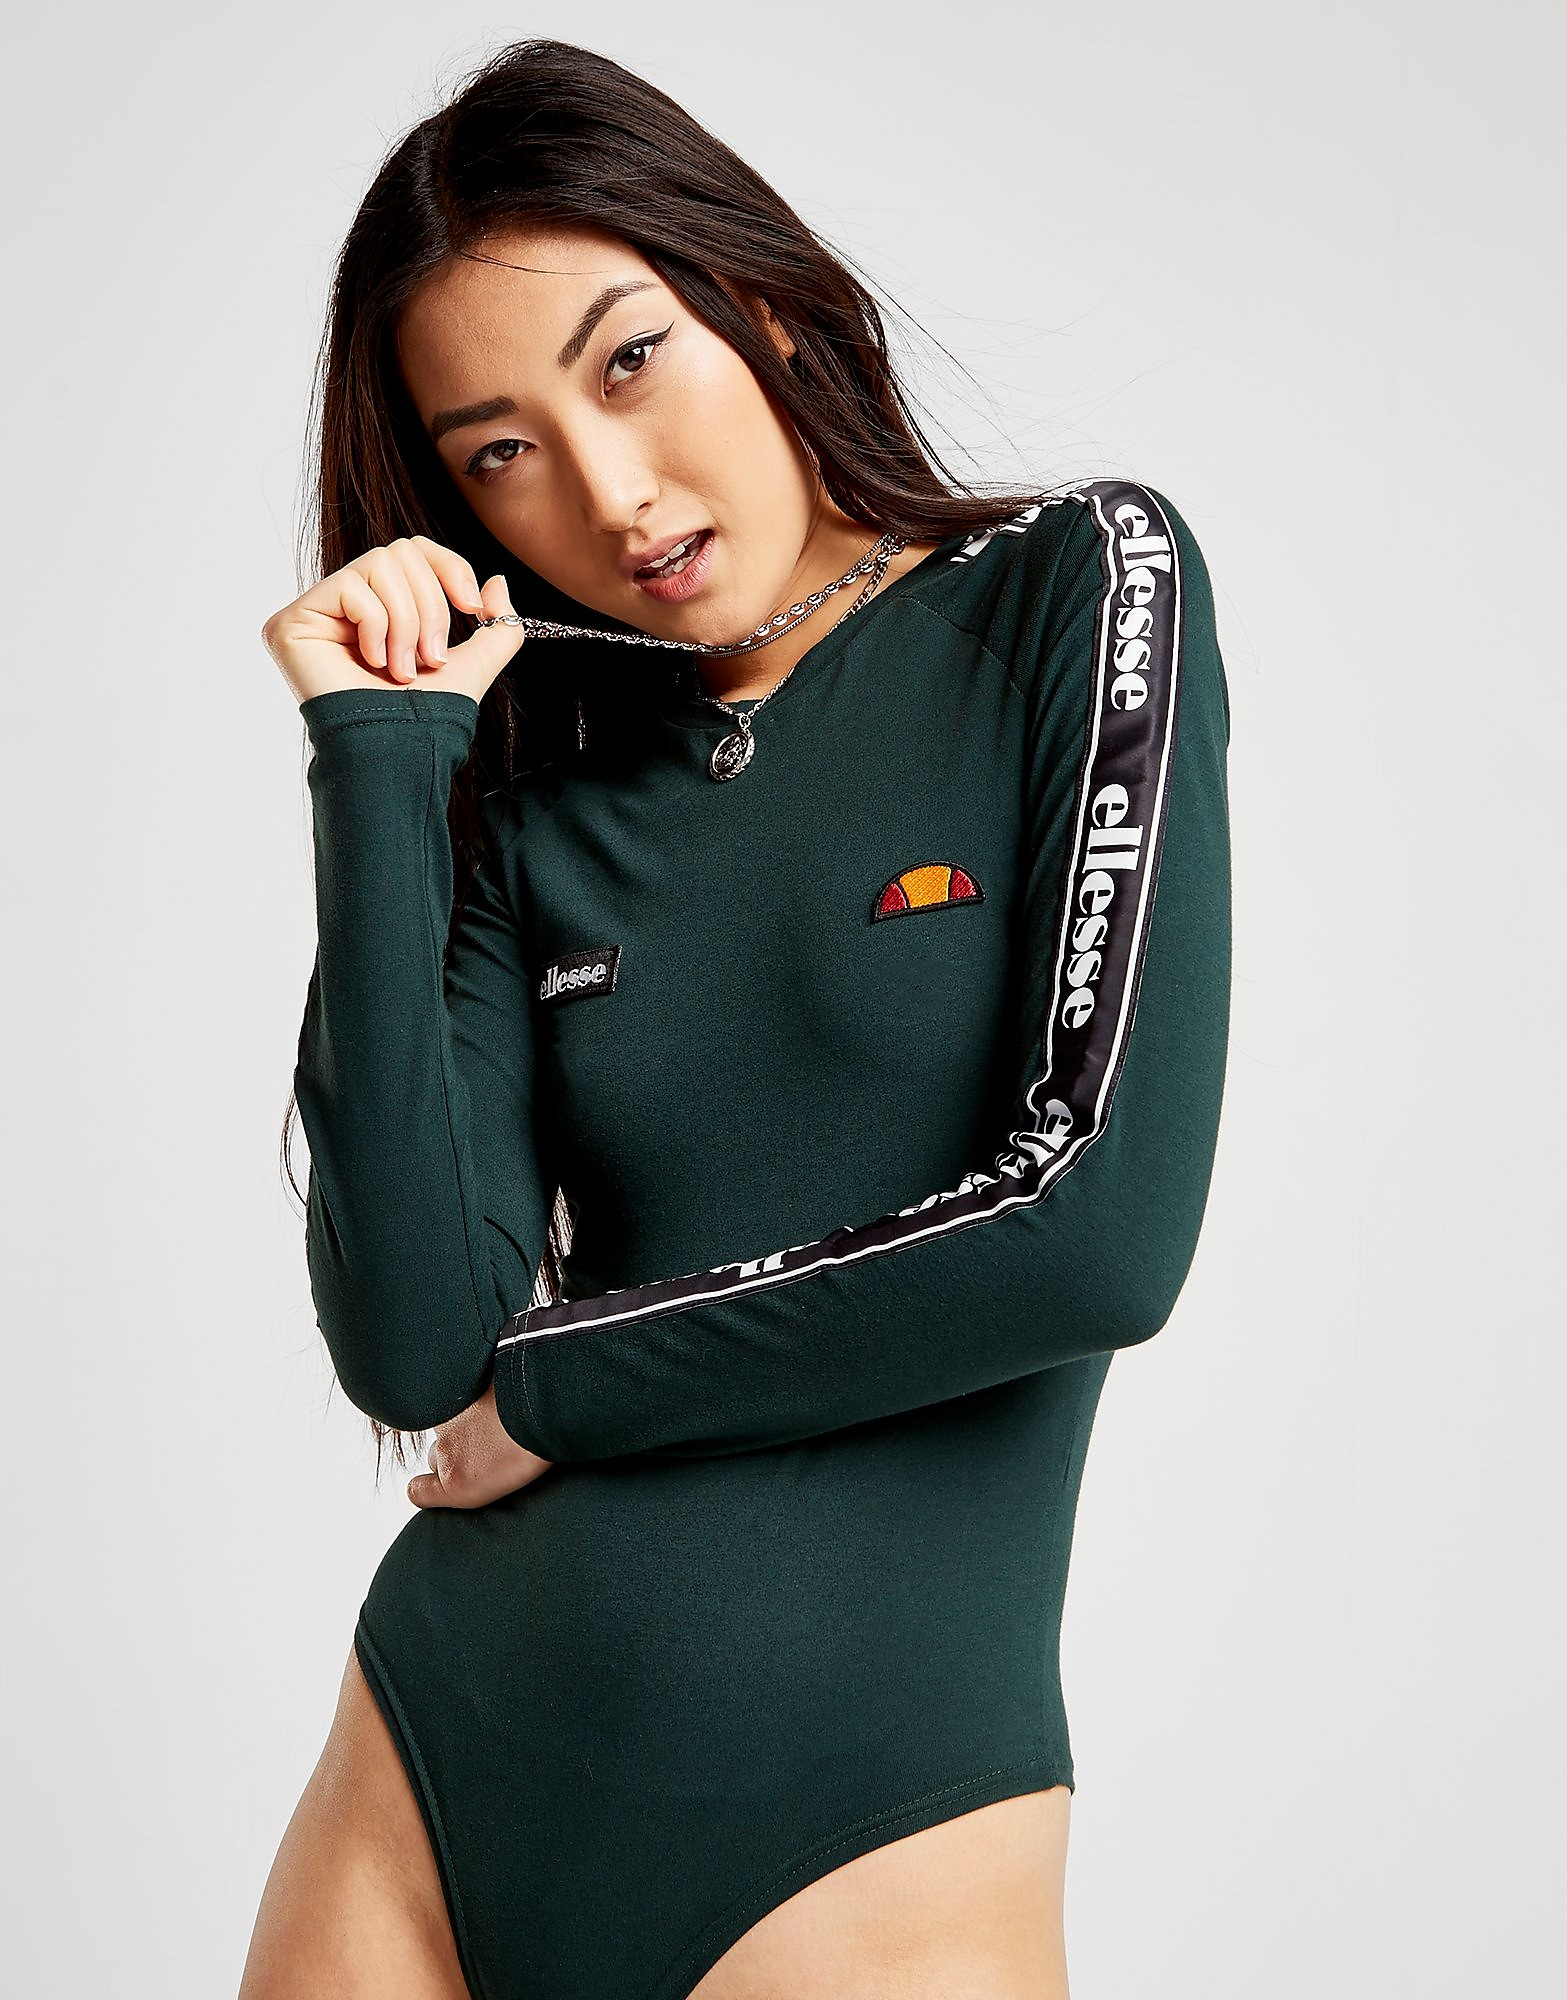 Ellesse Body à manches longues Tape Femme - Only at JD - Vert, Vert